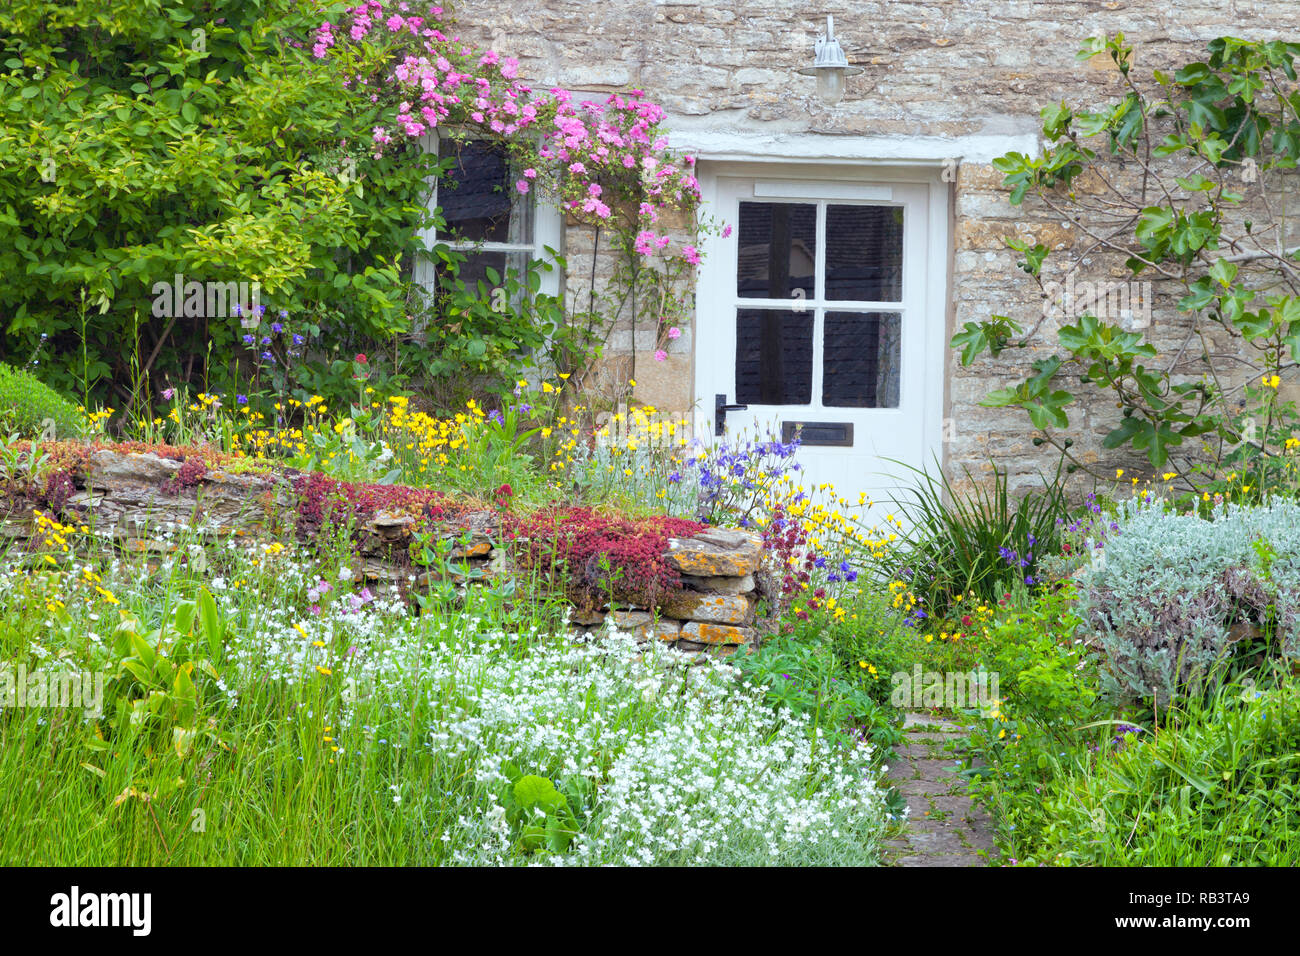 White Wooden Doors In A Charming English Country Cottage With Front Garden Full Of Flowers In Bloom Pink Rose Fig Tree Climbing The Stone Wall Stock Photo Alamy